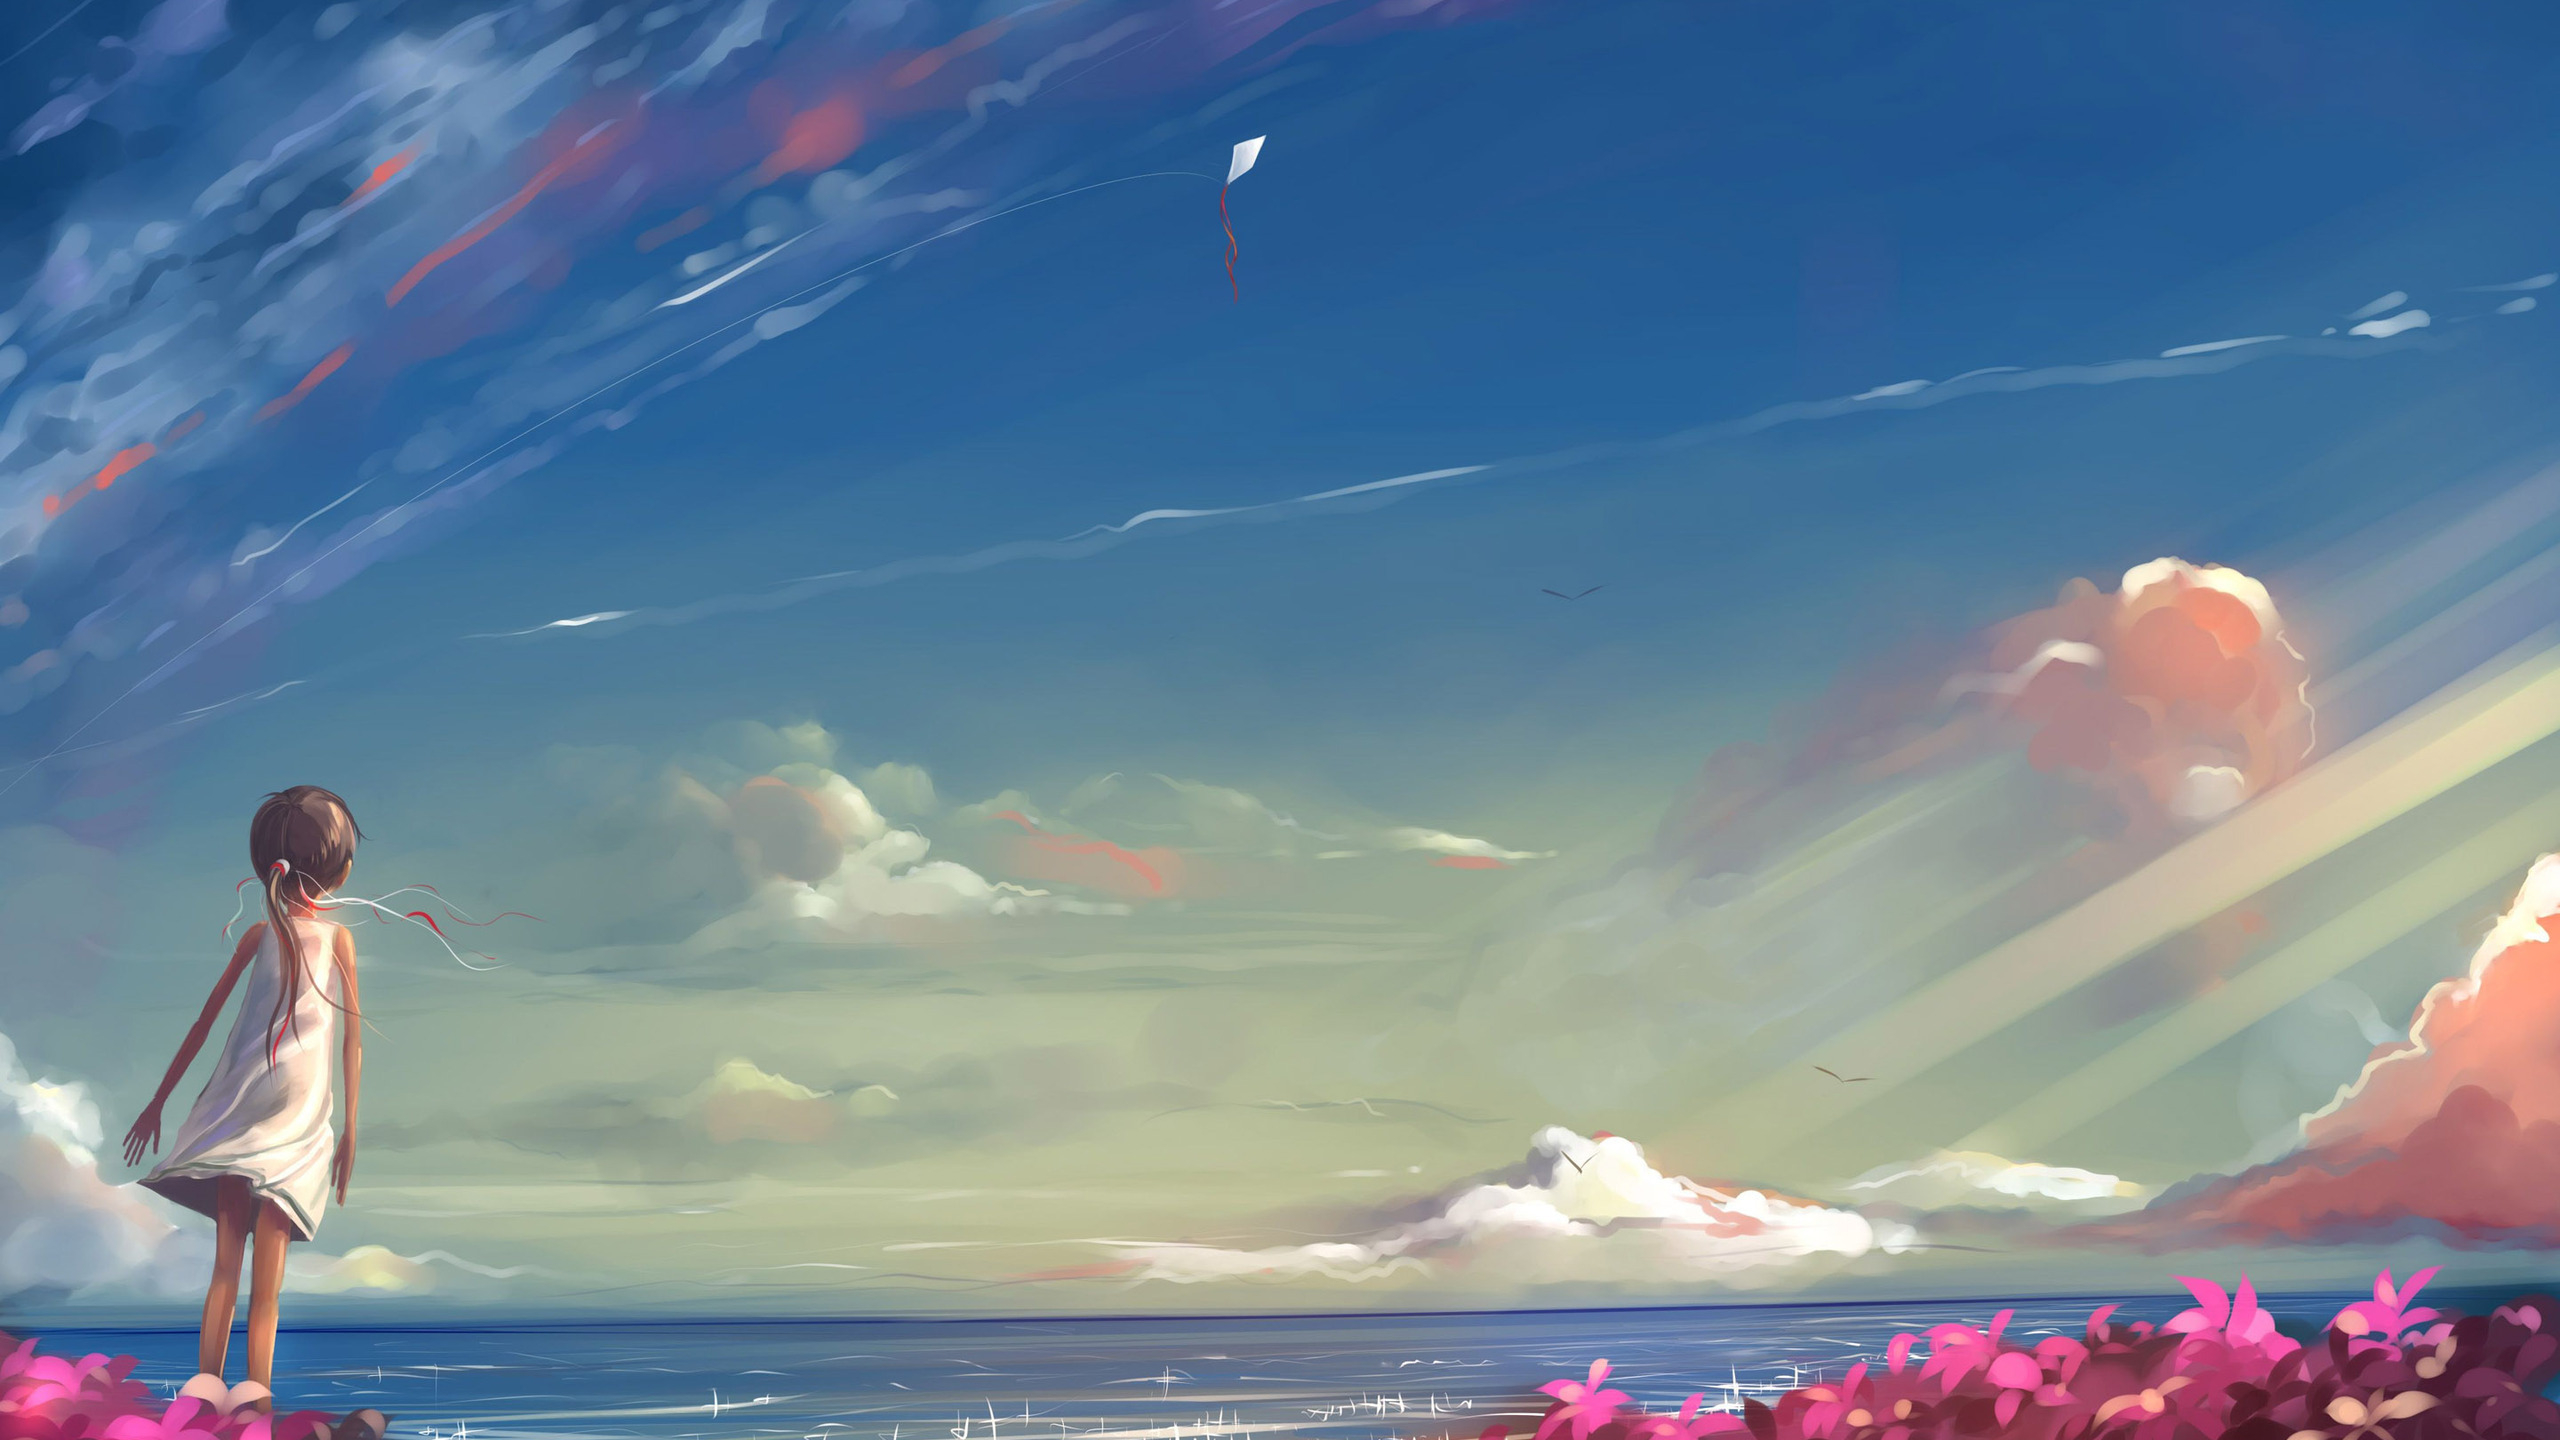 Anime Girl Looking At Sky Hd Anime 4k Wallpapers Images Backgrounds Photos And Pictures